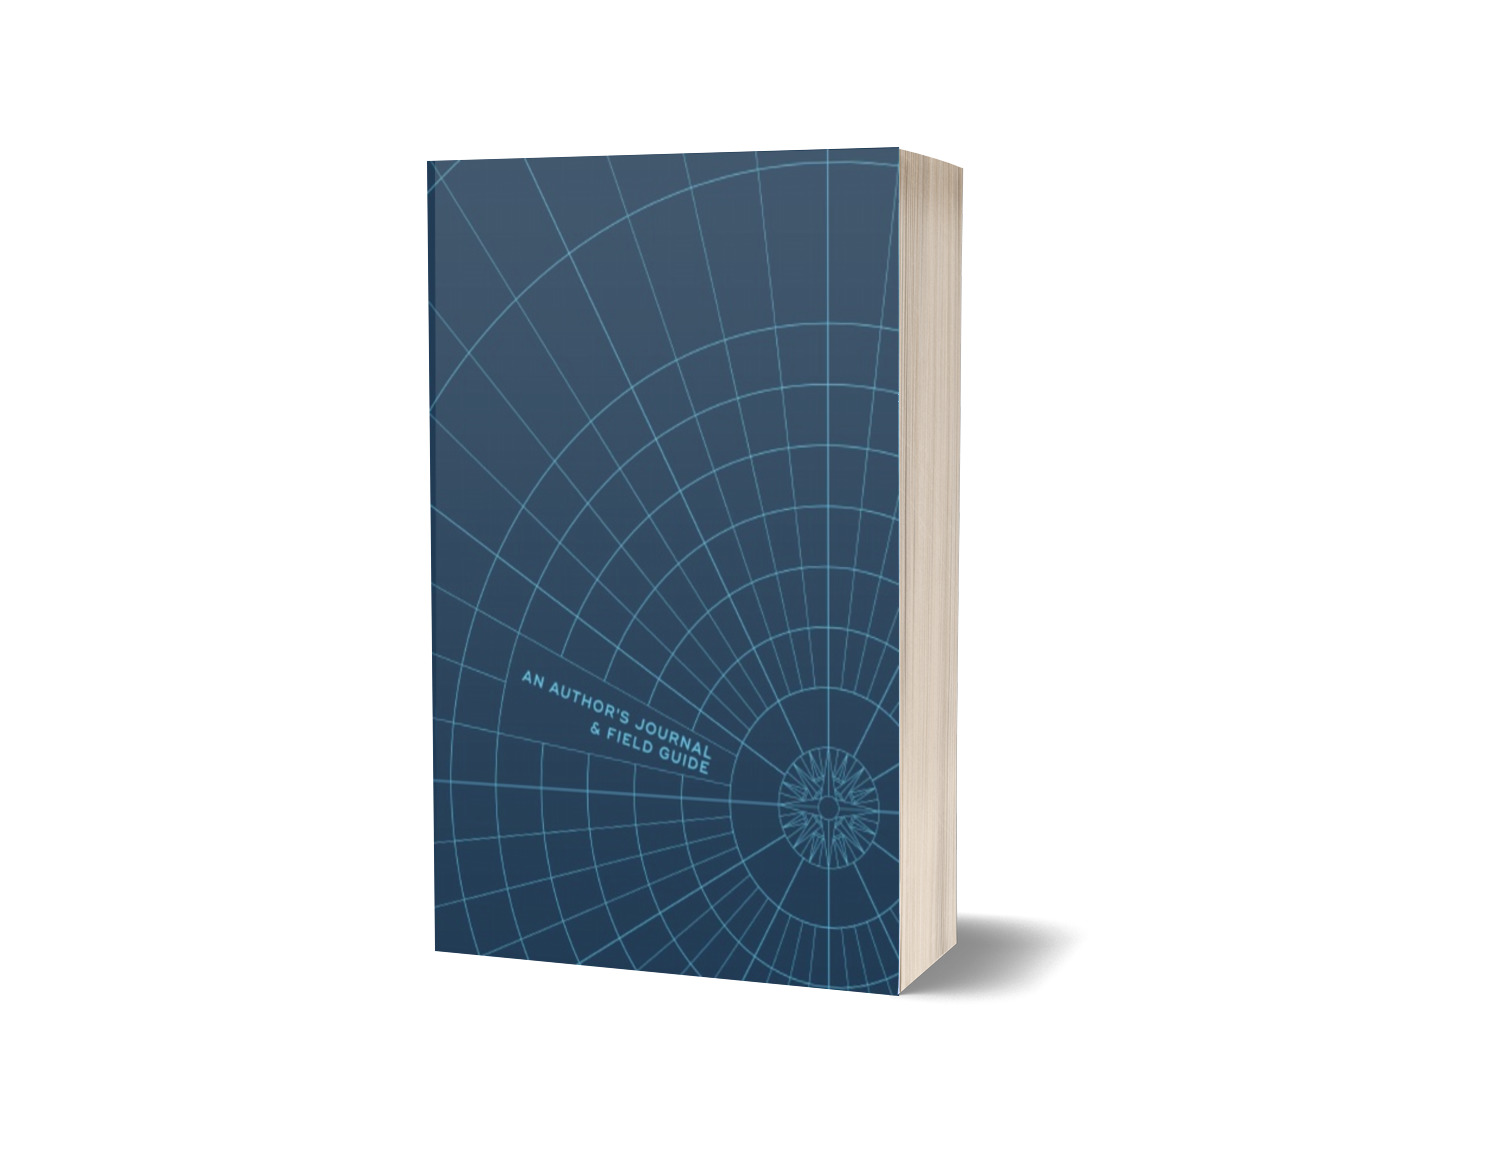 An Author's Journal & Field Guide